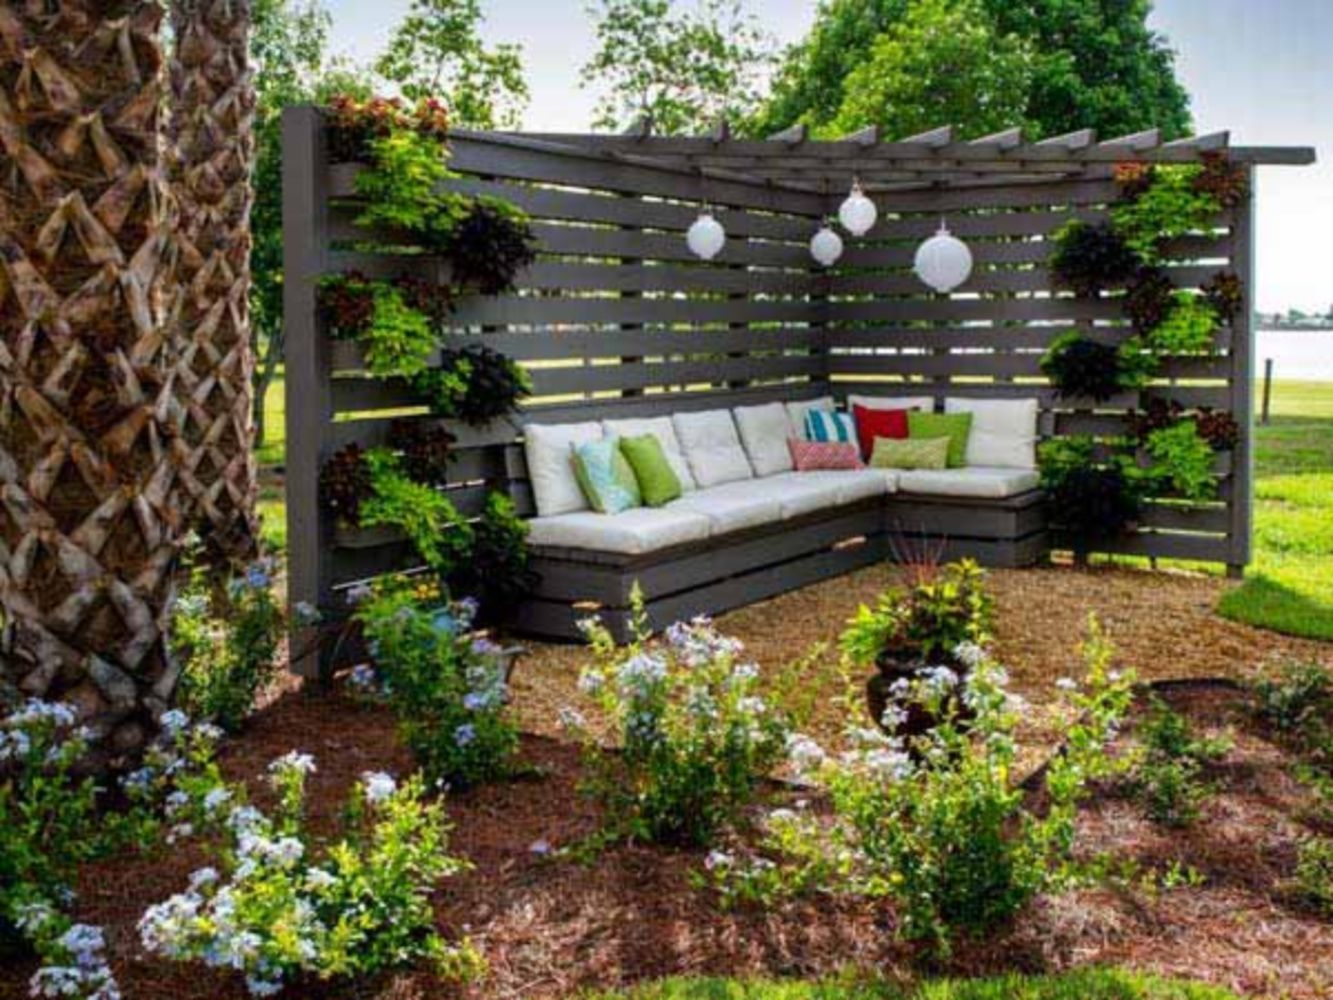 41 Attractive Outdoor Privacy Screen And Pergola Ideas with regard to Privacy Screen Ideas For Backyard